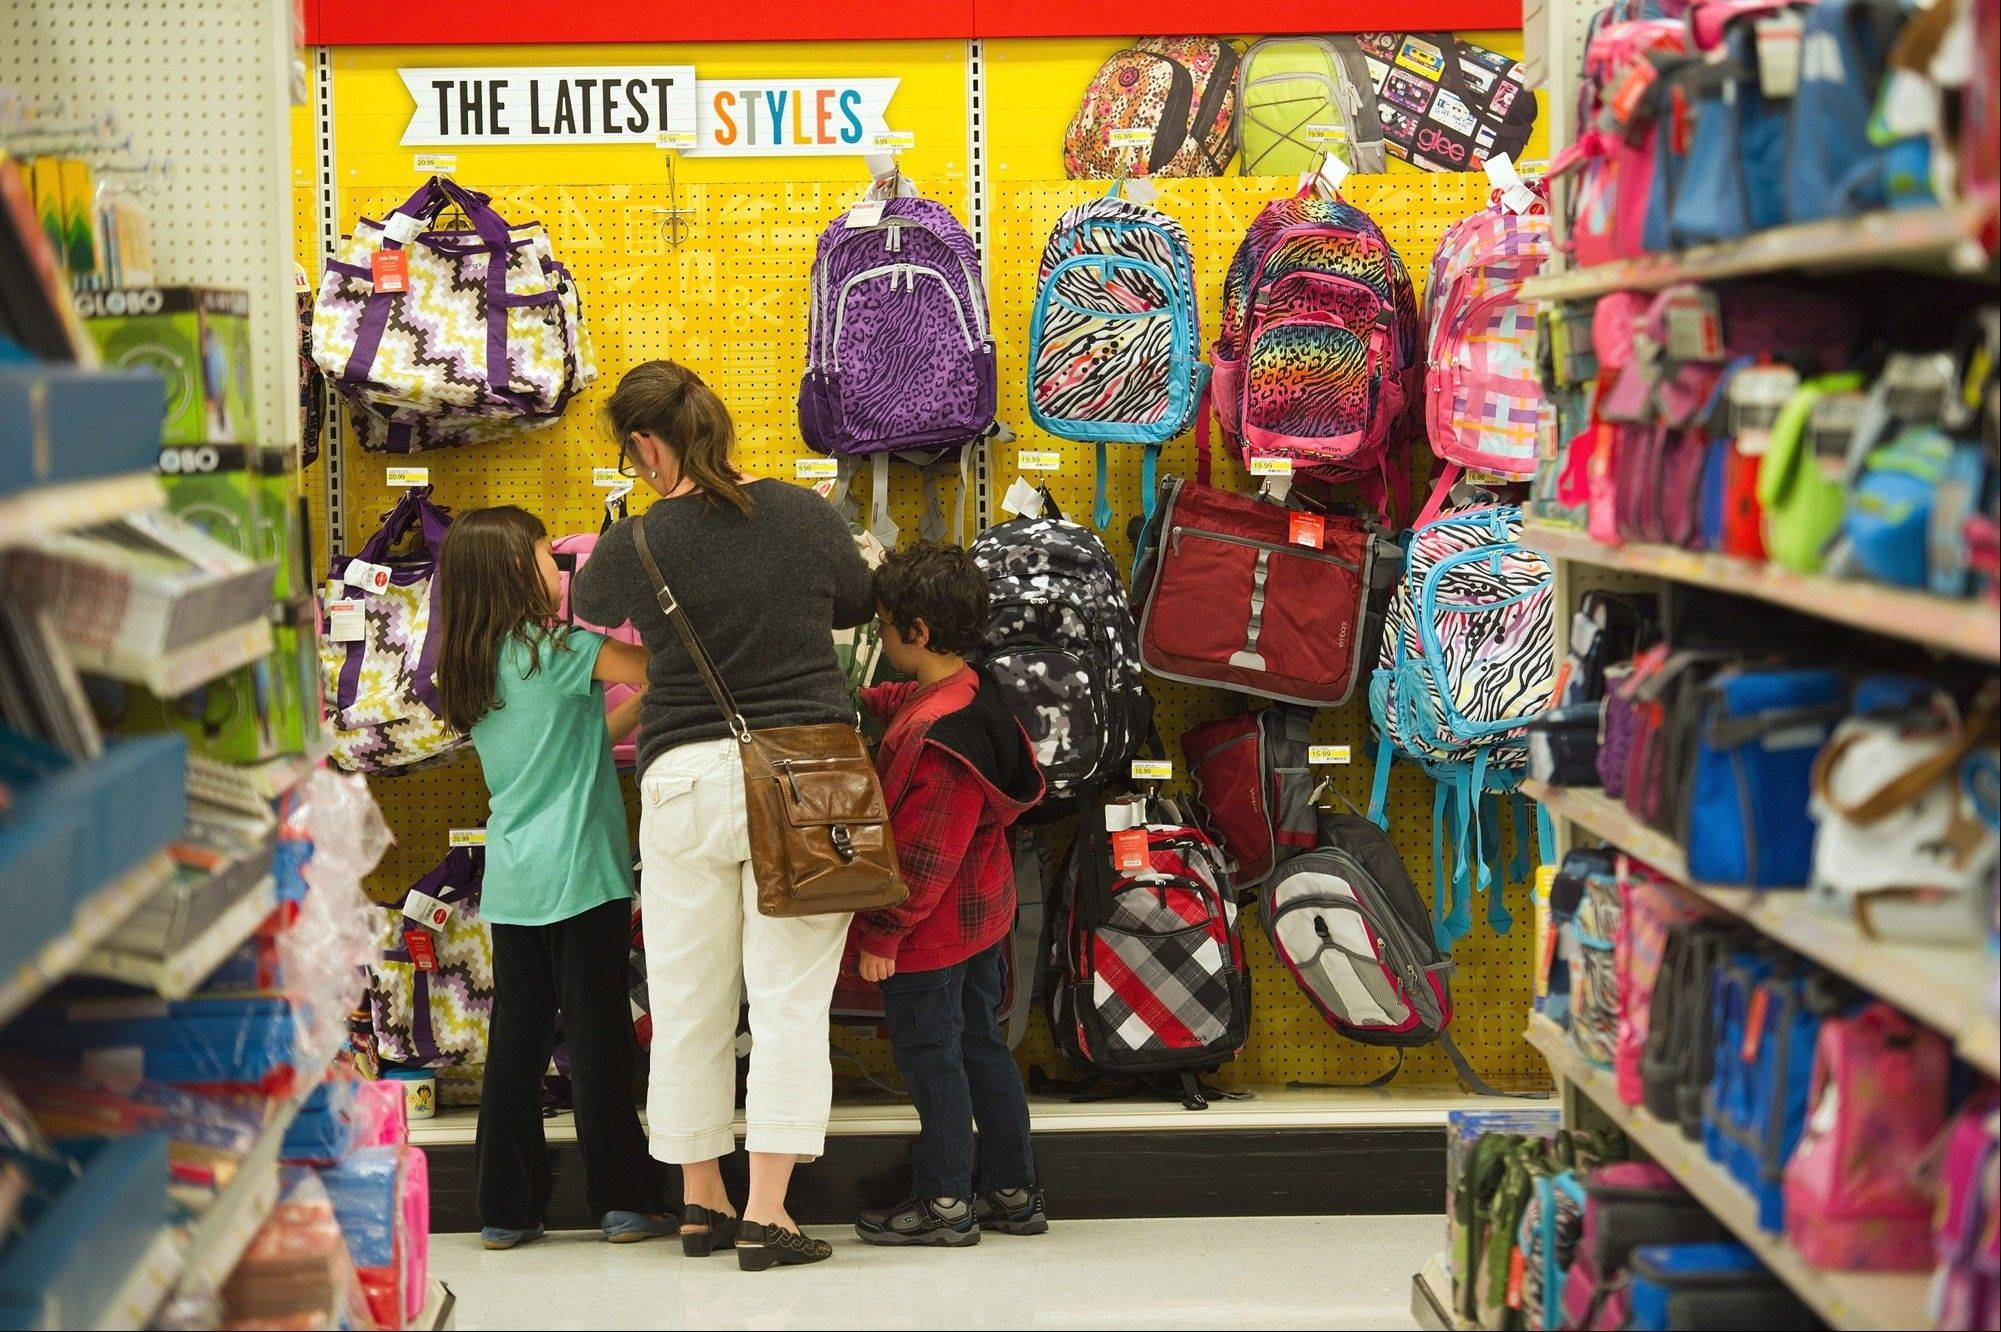 U.S. households plan to spend an average 7.8 percent less for this year's back-to-school shopping season because of the bumpy economic recovery, the National Retail Federation says.